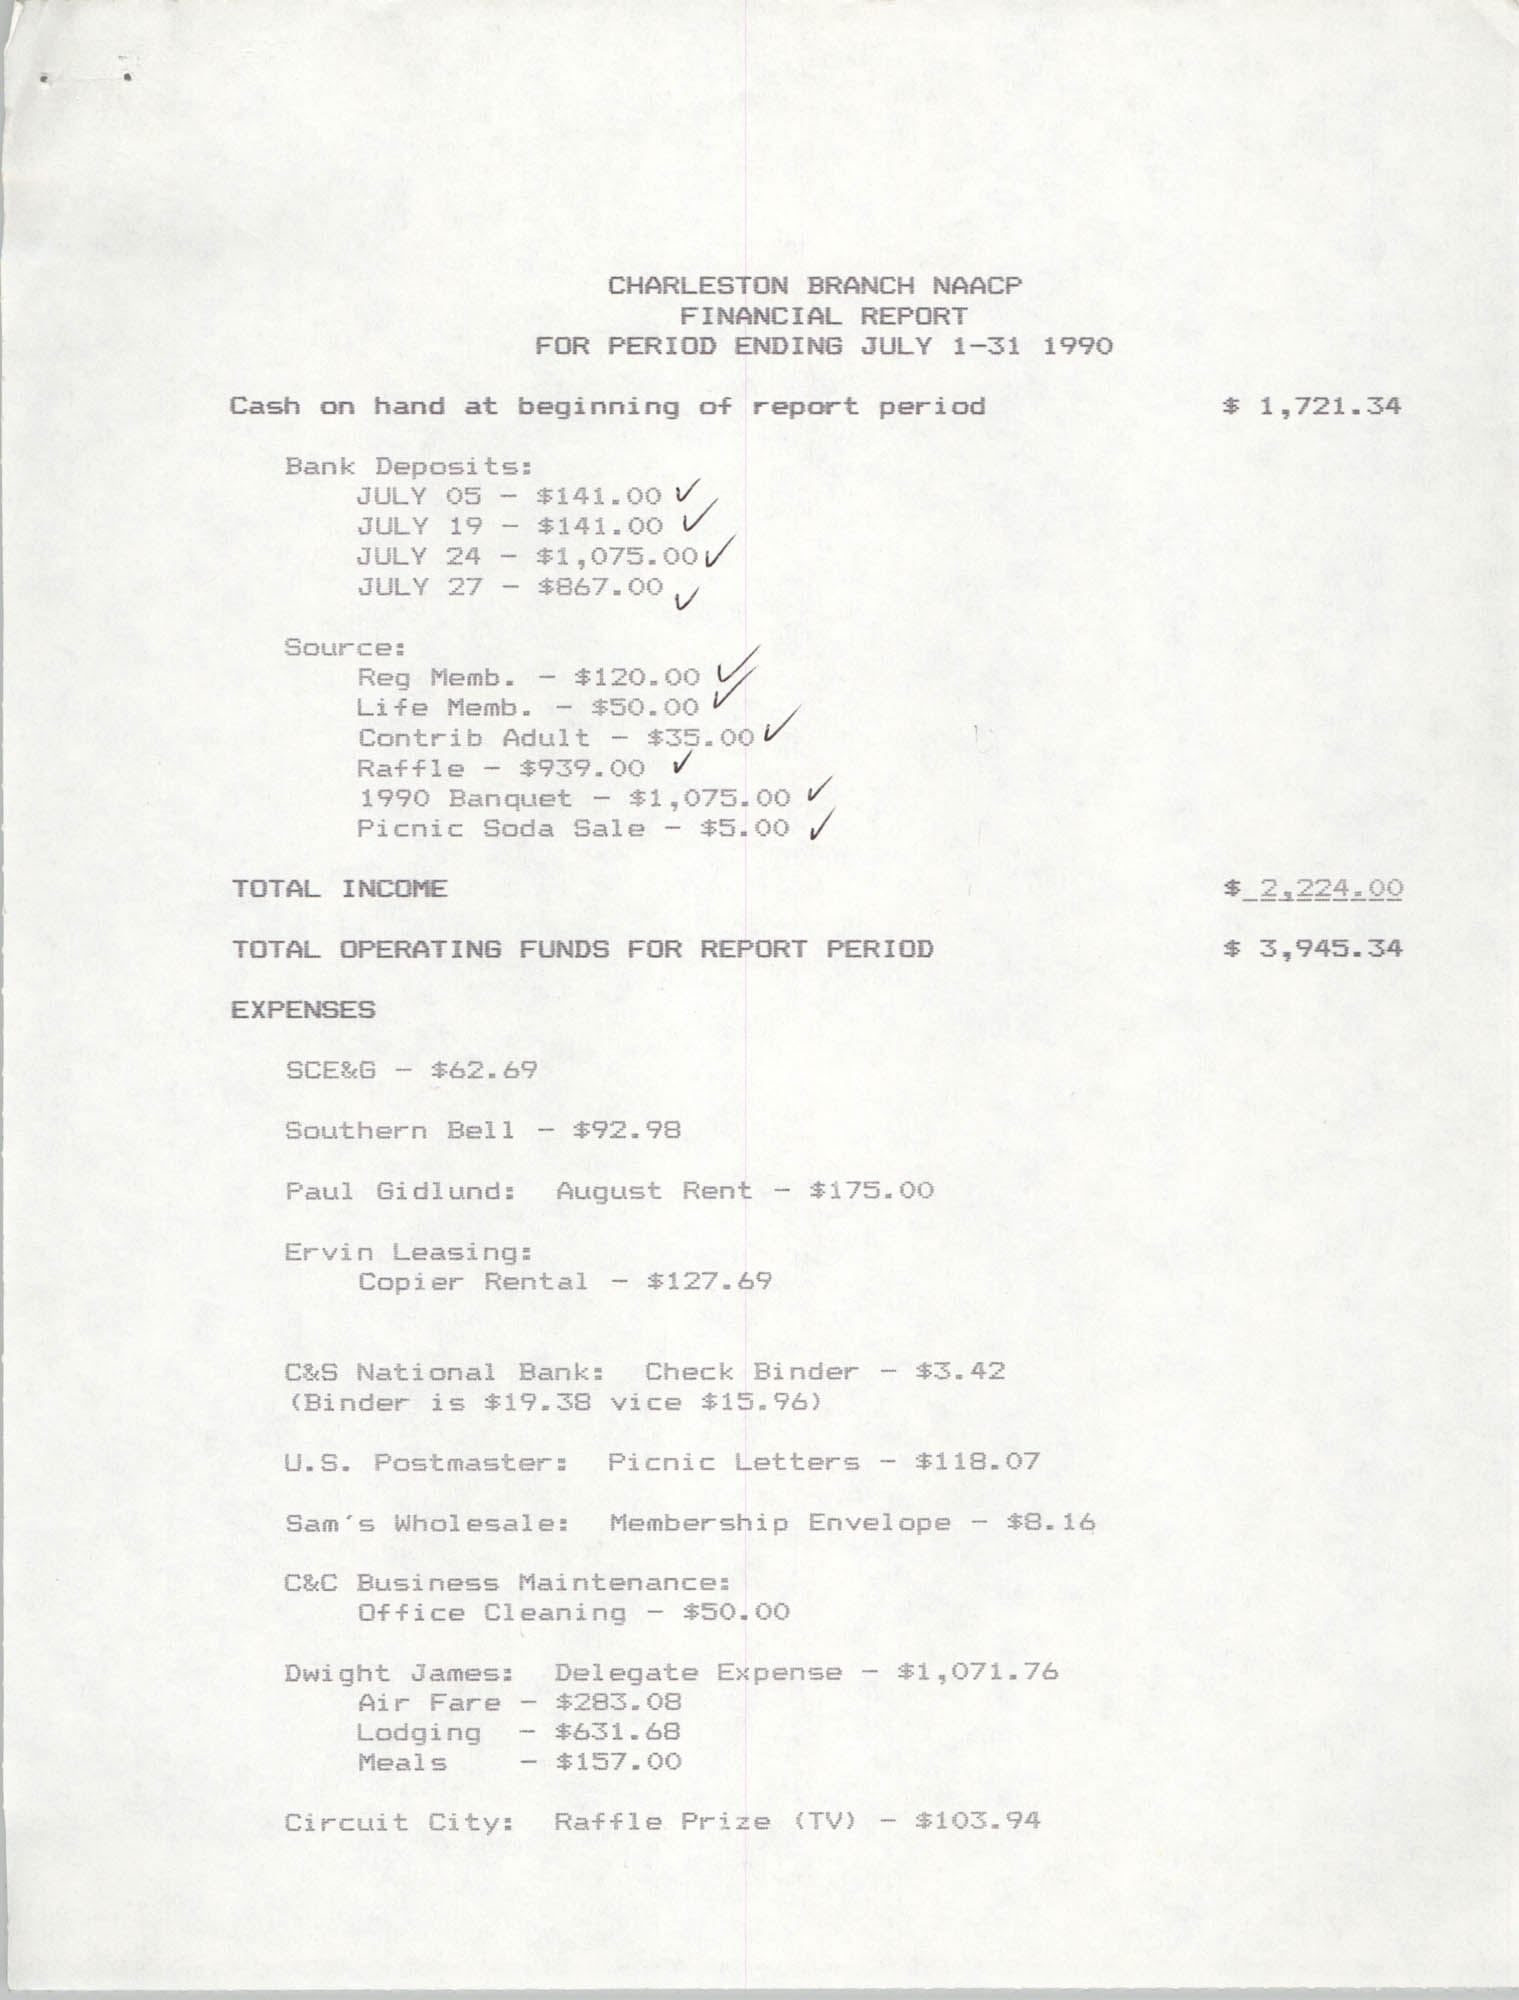 Charleston Branch of the NAACP Financial Report, July 1990, Page 1